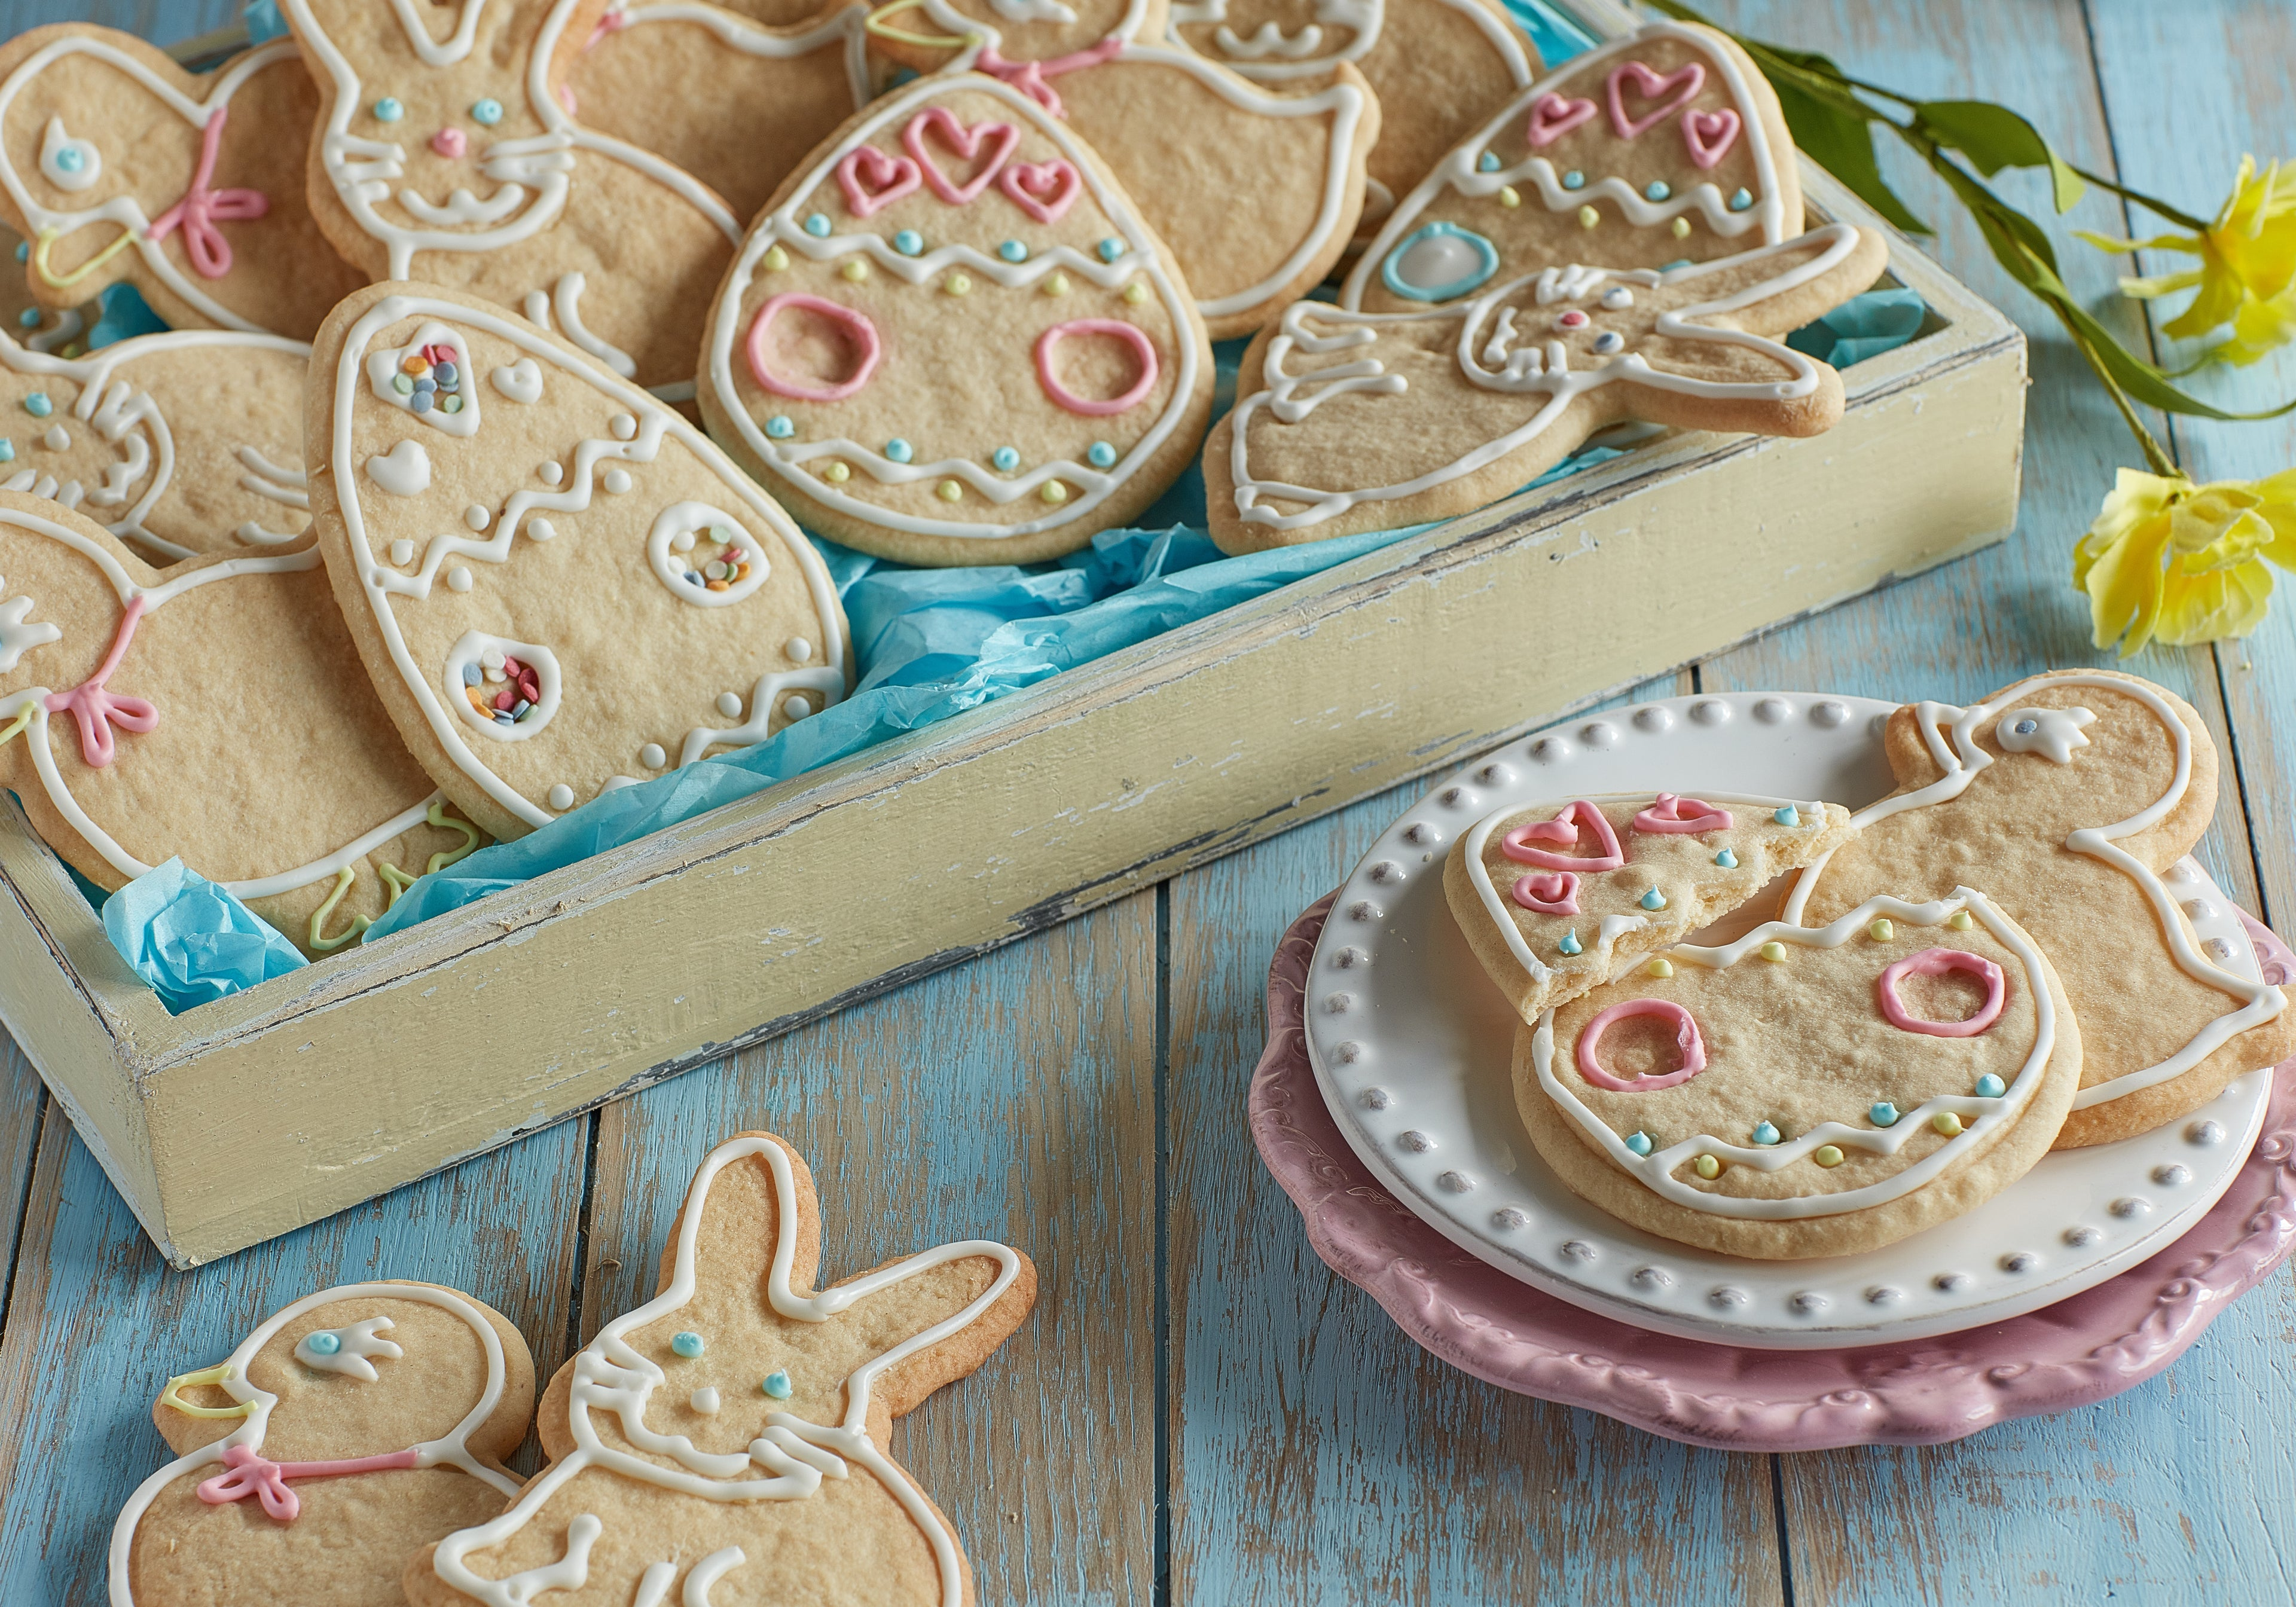 Easter Biscuits in a box with a few on a plate in the forefront